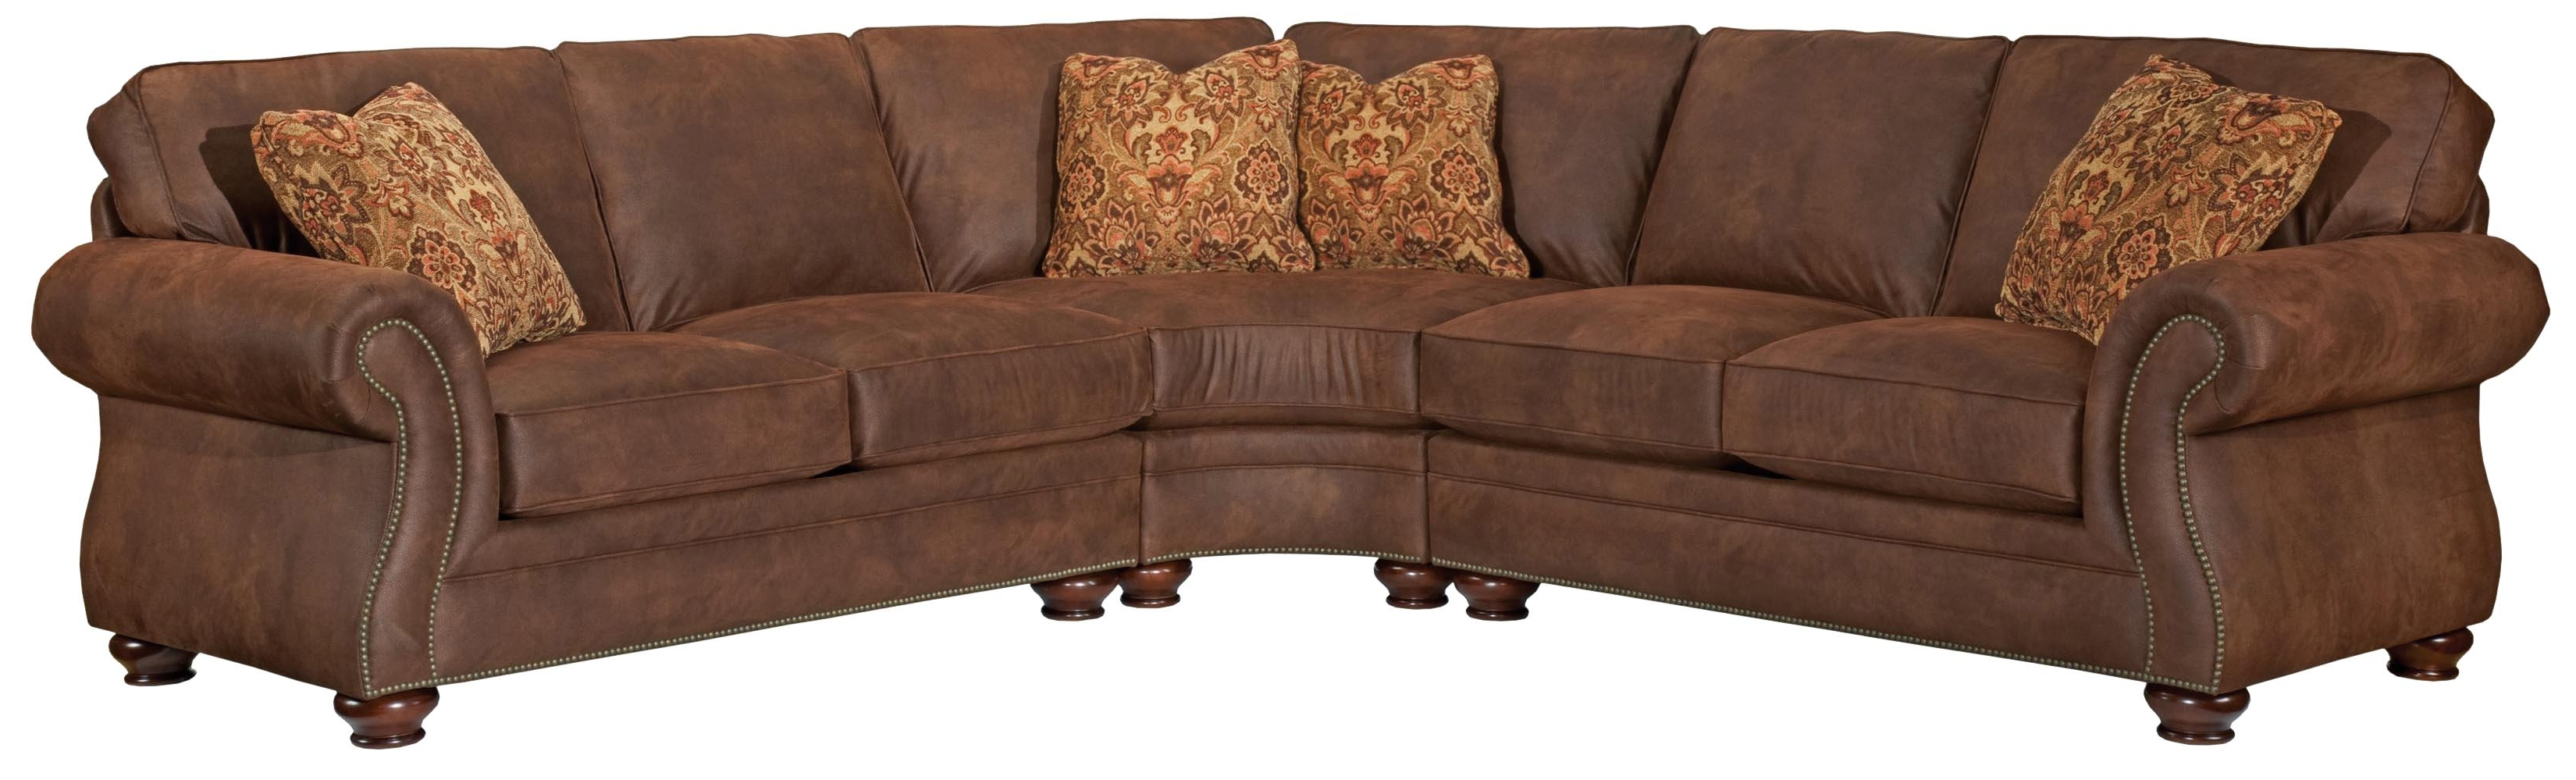 Furniture : Sectional Couch Sears Zebra Sectional Couch Recliner In 2017 Nz Sectional Sofas (View 13 of 15)